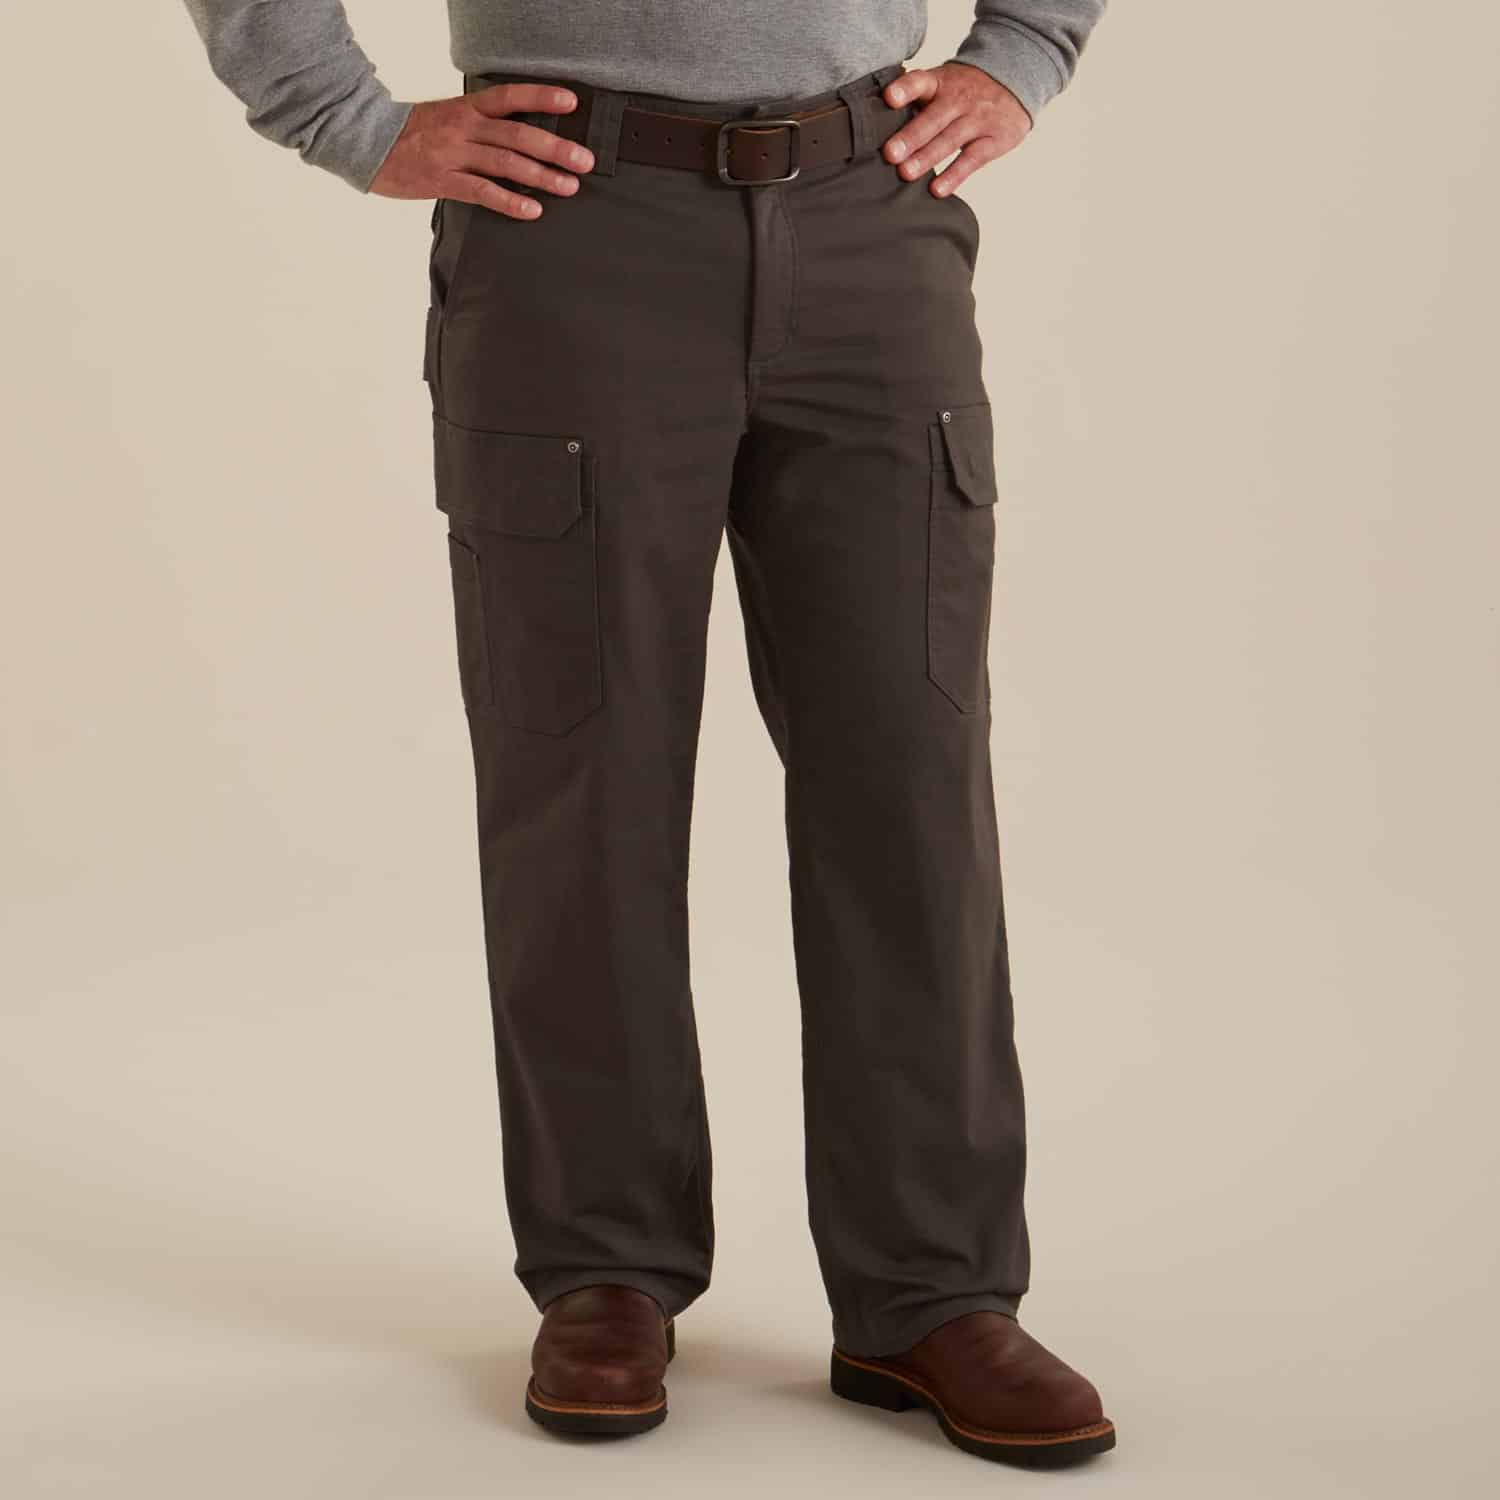 Duluth Flex Fire Hose Work Pants for Men